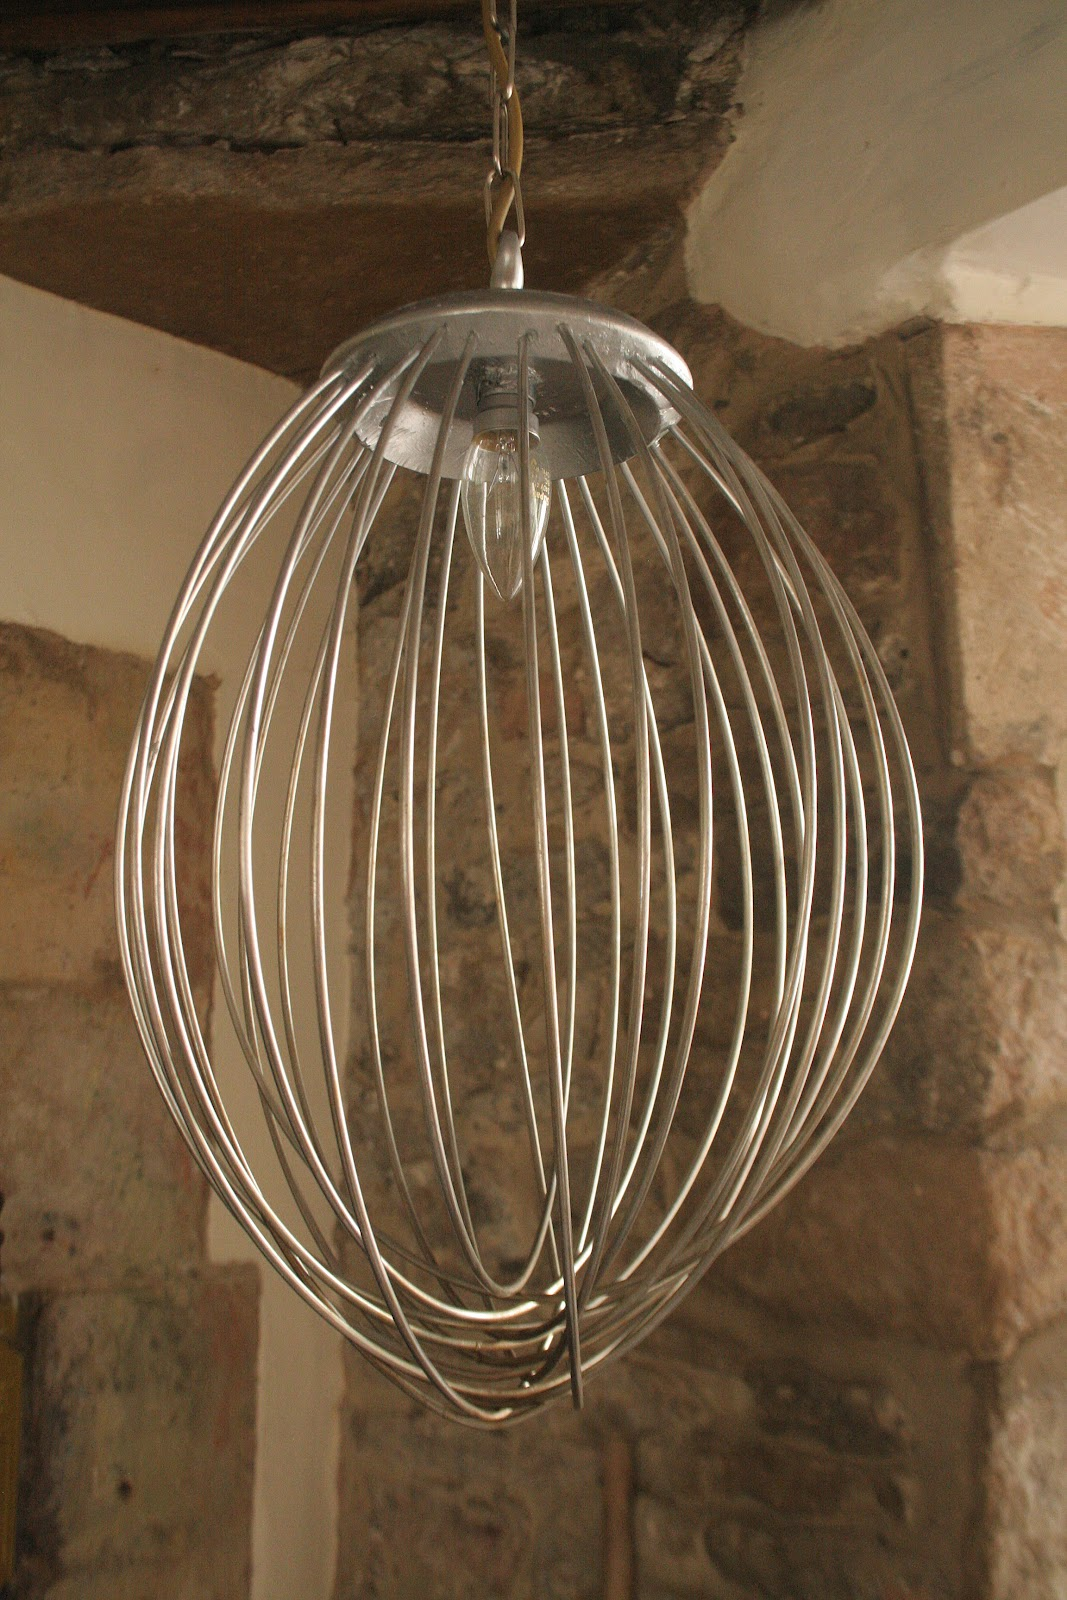 No21 interiors painting decorating industrial lighting re purposed we have sold many of our lights to restaurants including antler chandeliers arubaitofo Image collections